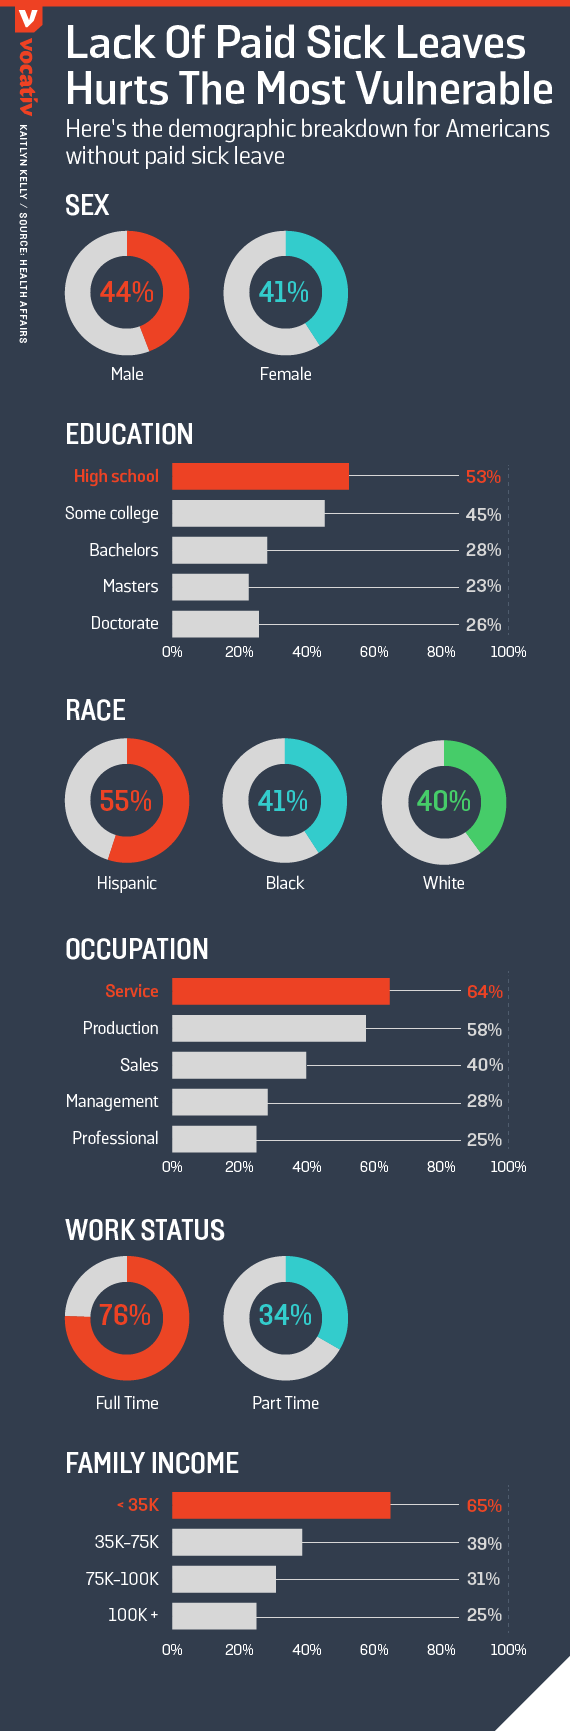 Here's the demographic breakdown for Americans without paid sick leave